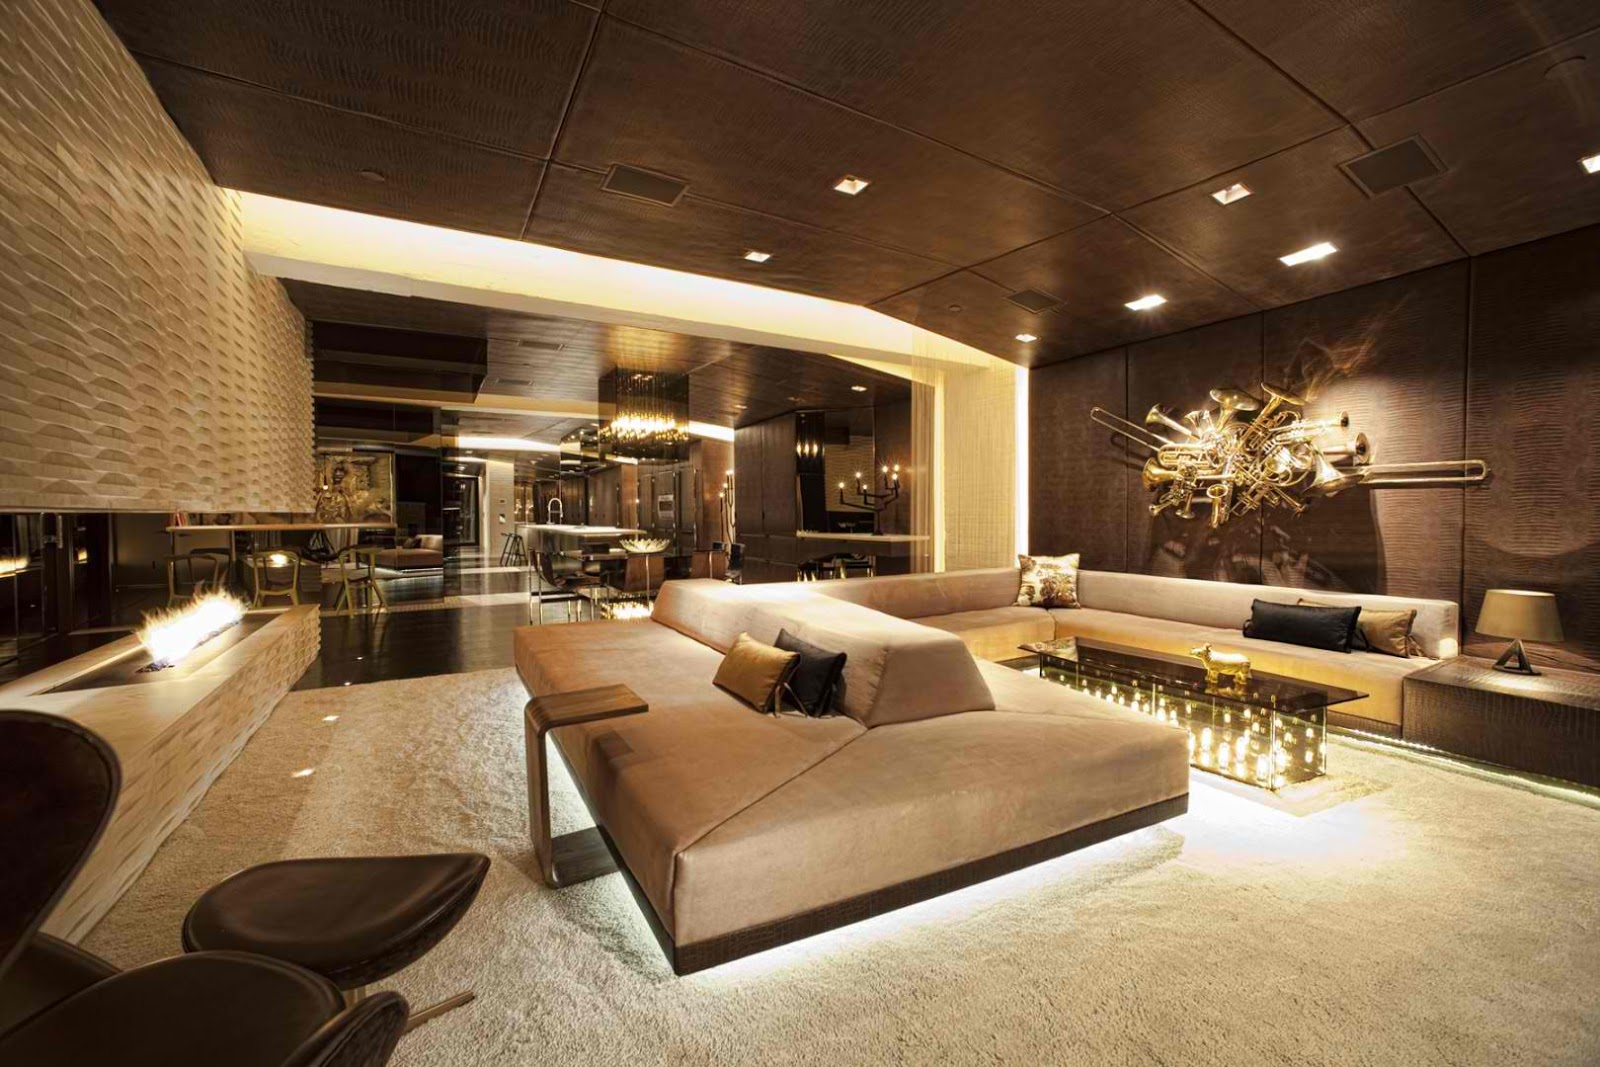 Home Luxury Interior Design Gallery Extreme Yacht Styling Ideas